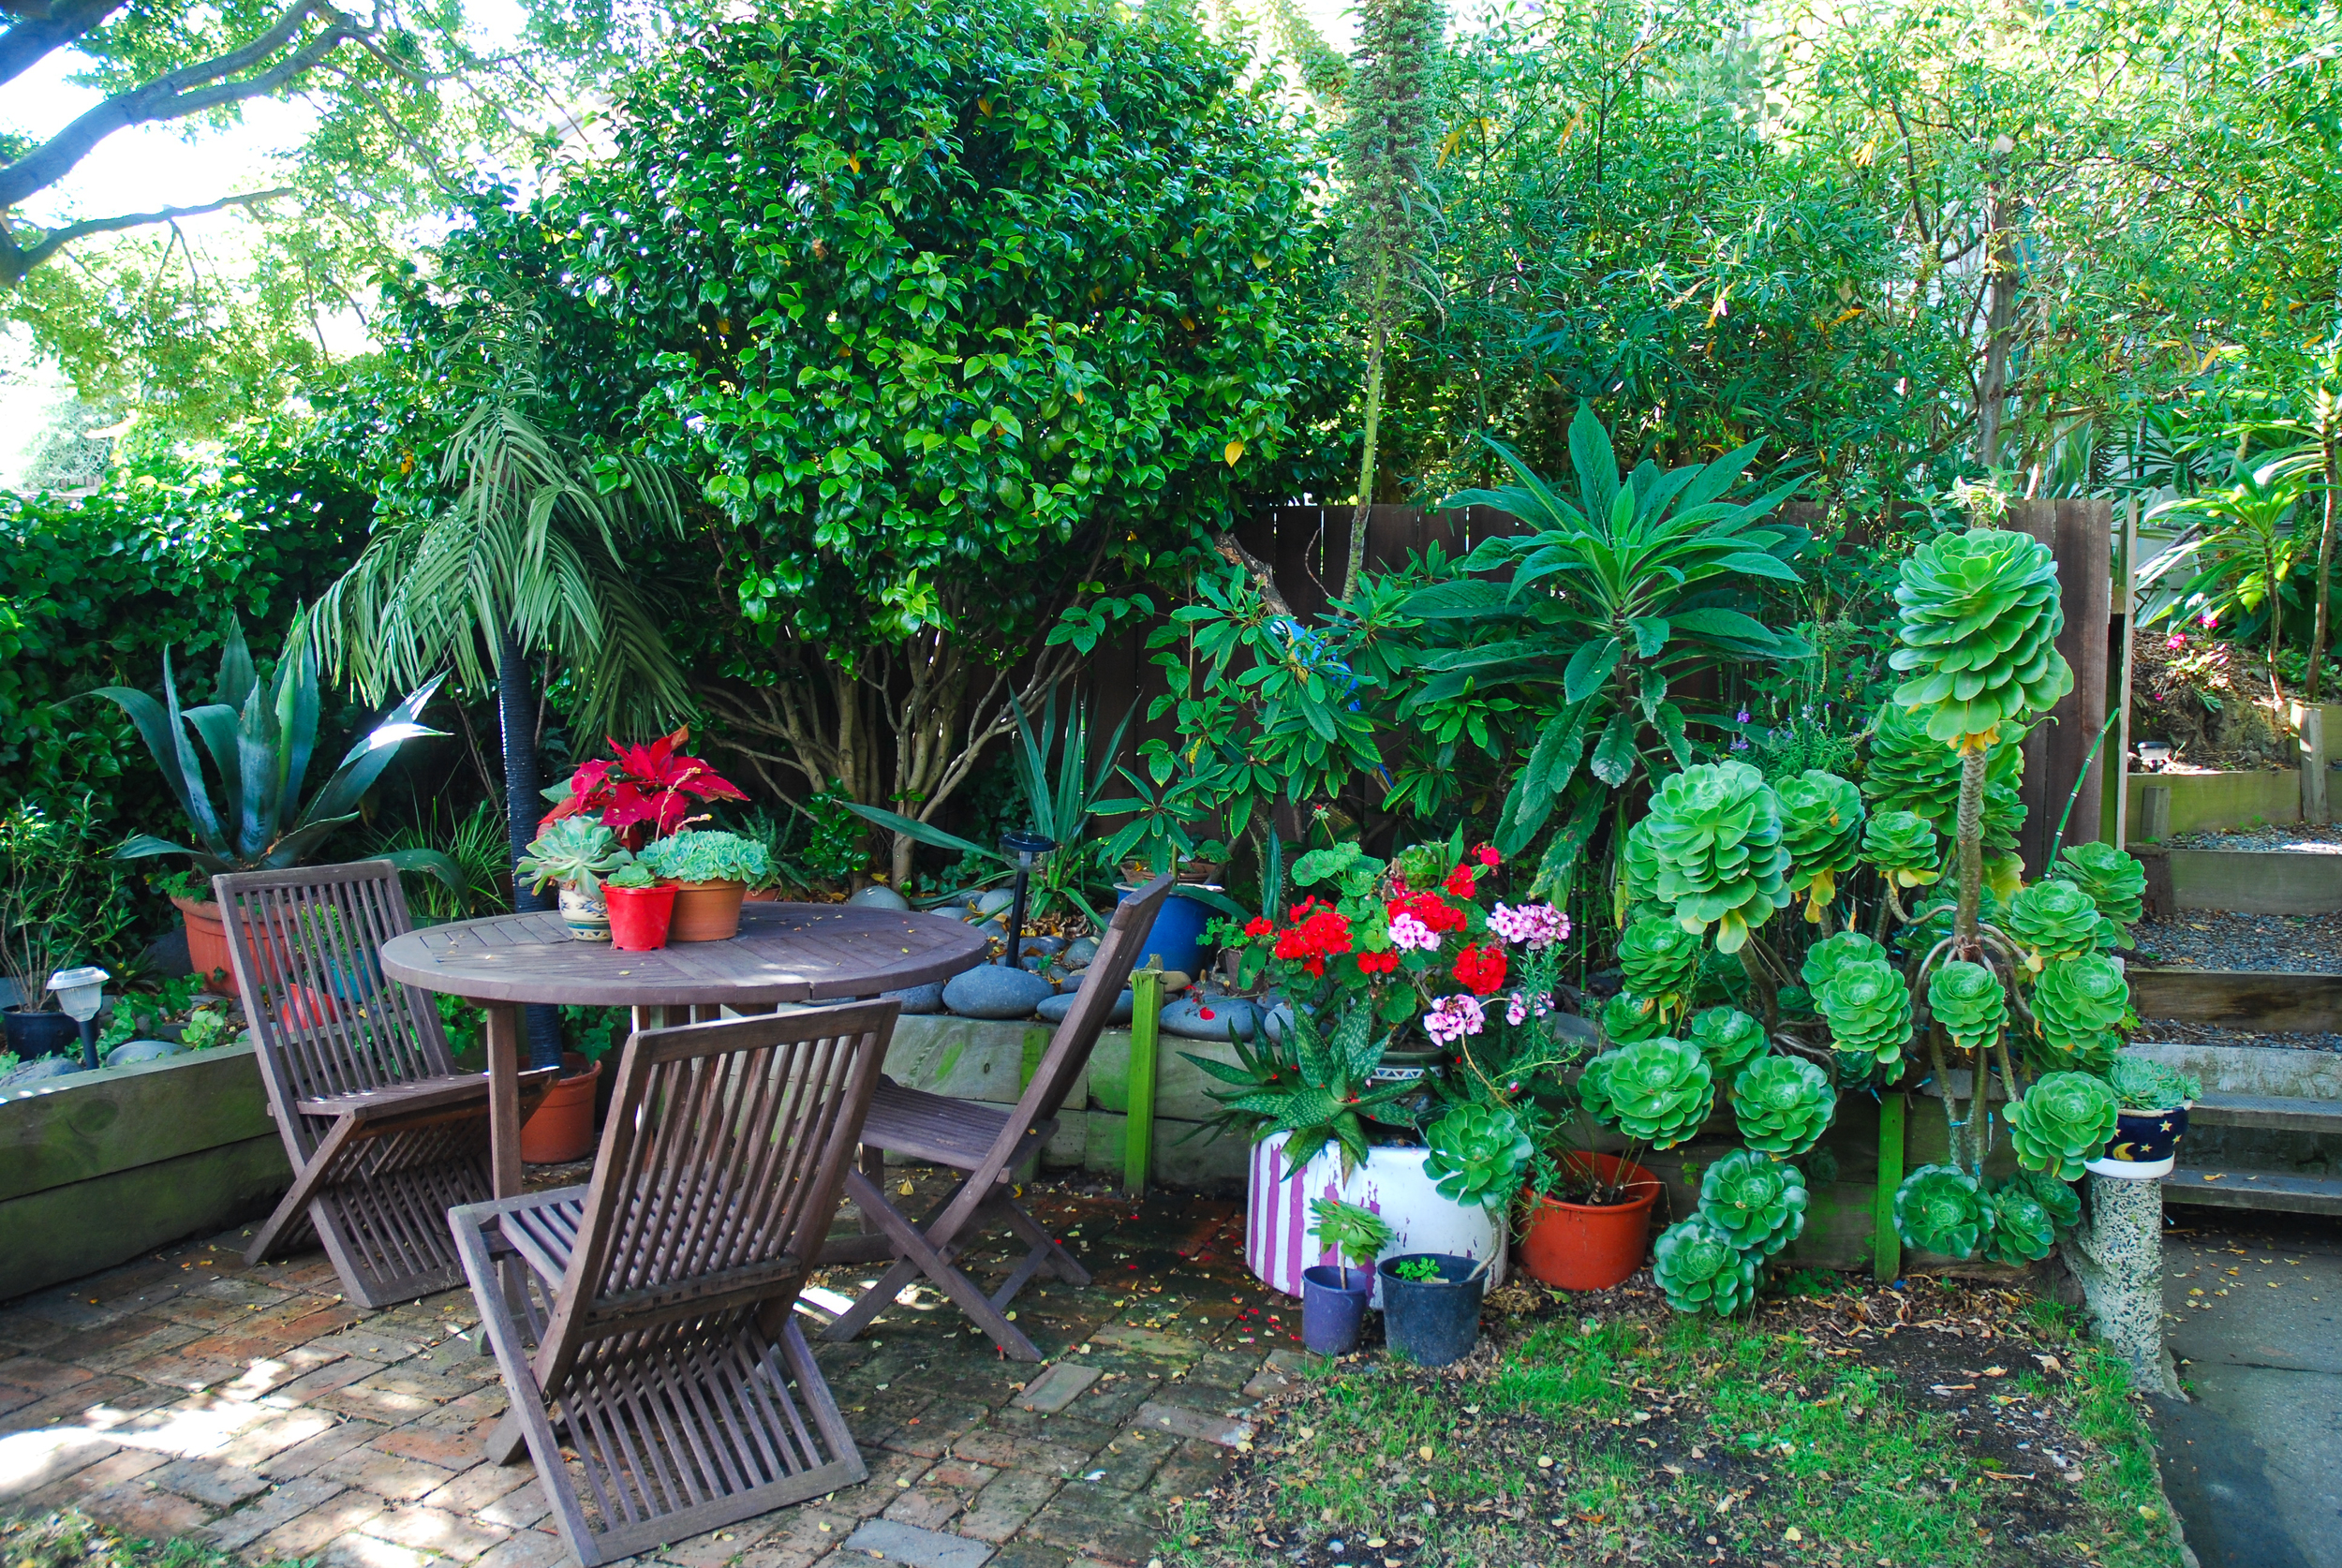 Just one small area of the garden